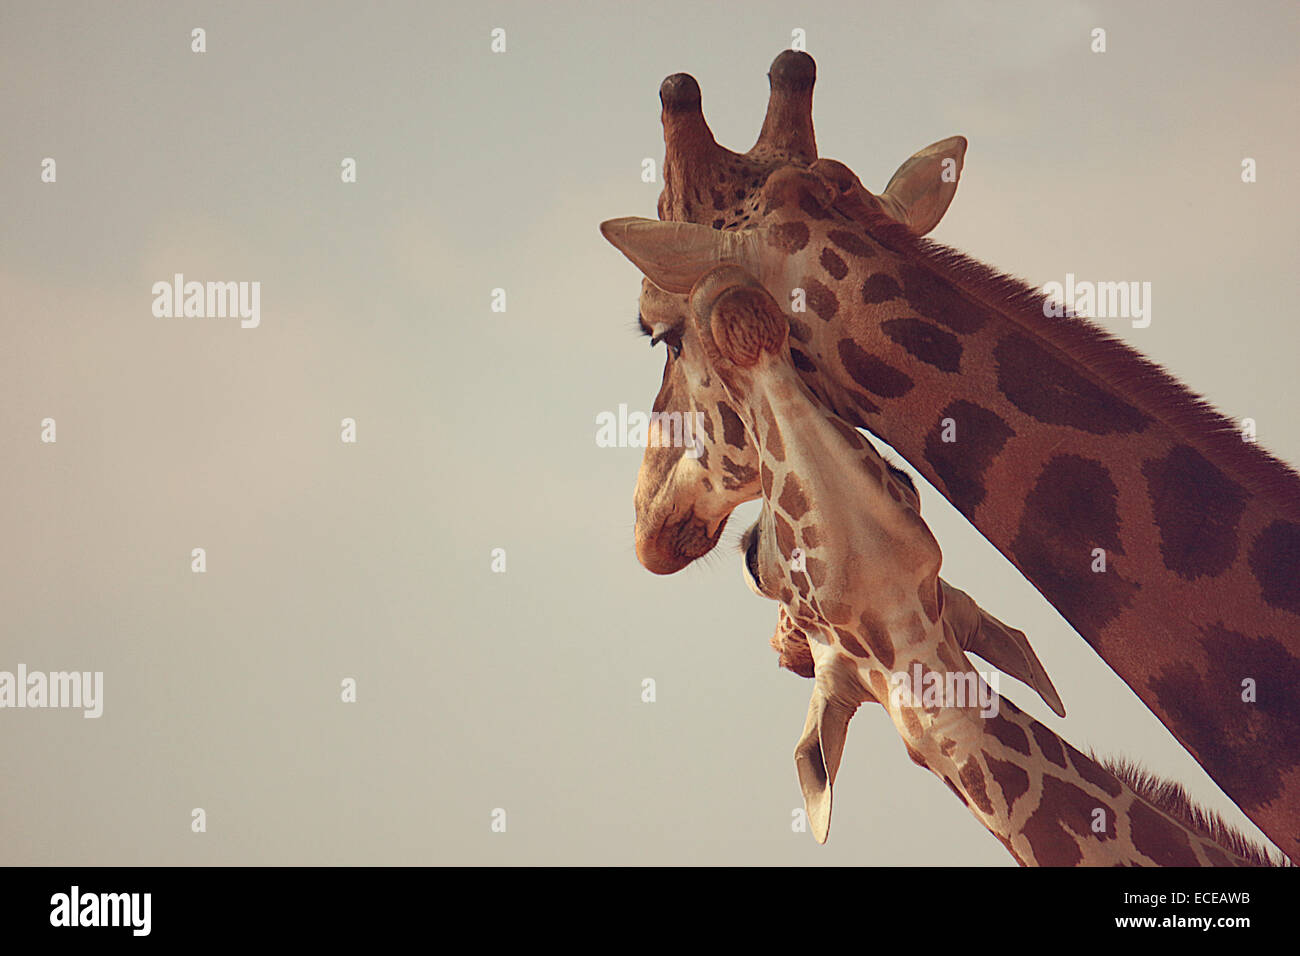 Two giraffes in zoo - Stock Image